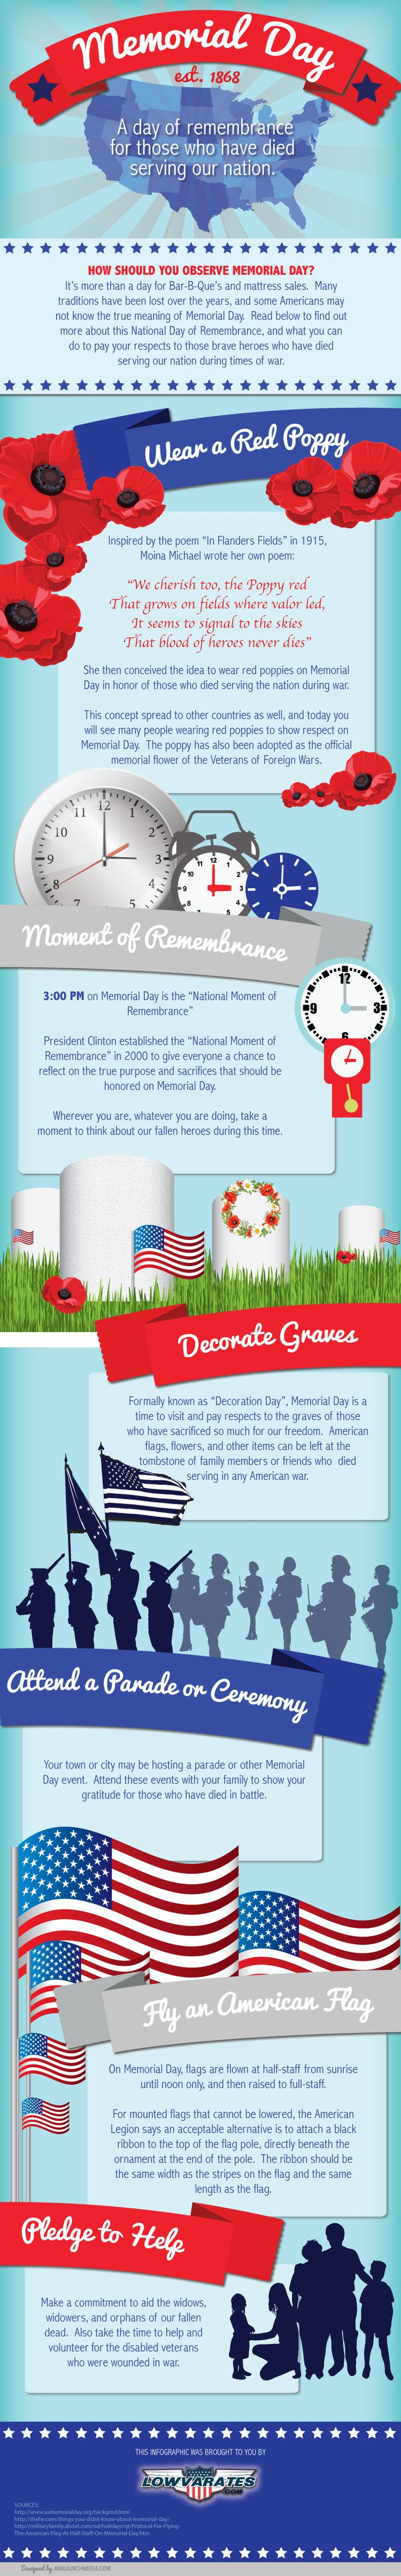 The True Meaning of Memorial Day & How to Celebrate